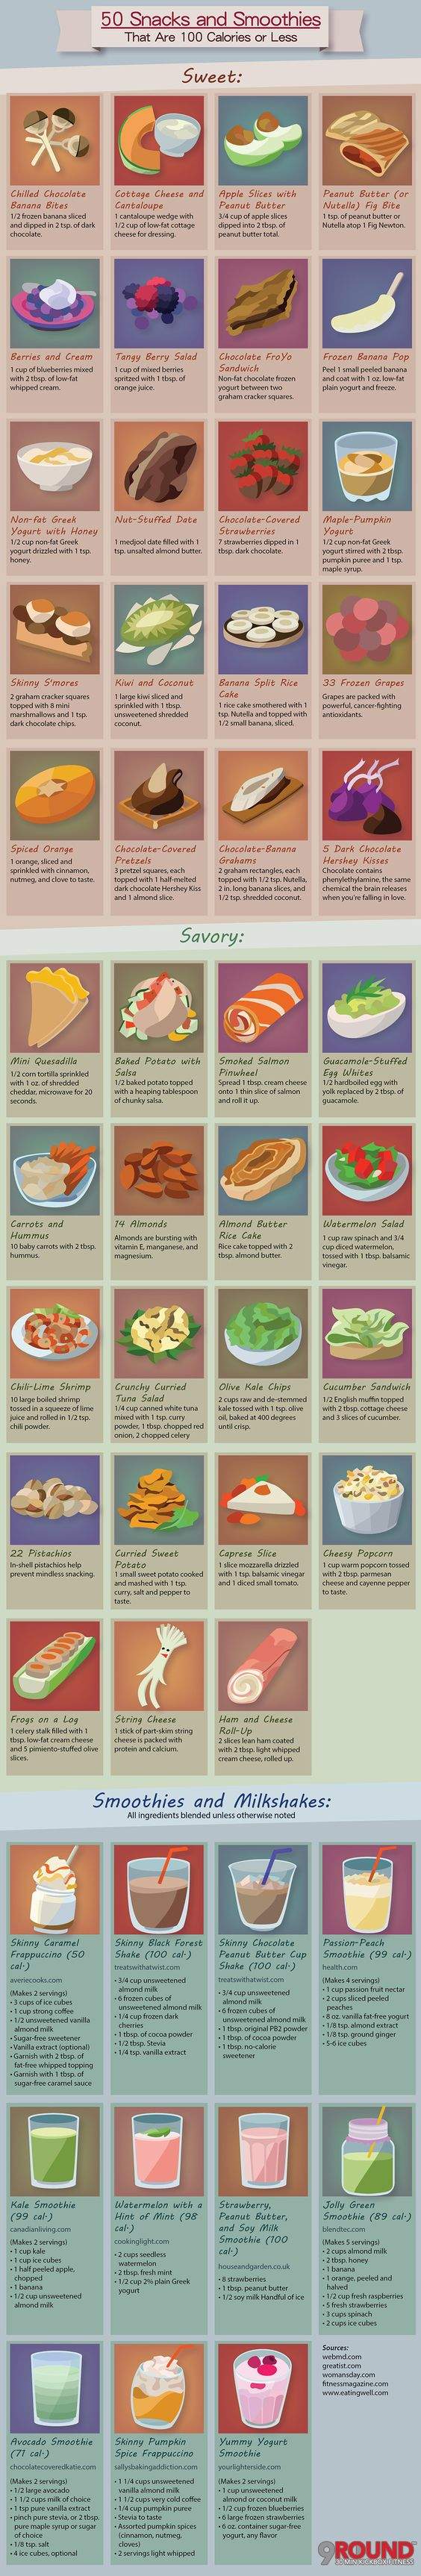 39 Healthy Snacks and 11 Smoothies Under 100 Calories - for the Perfect Summer - Imgur